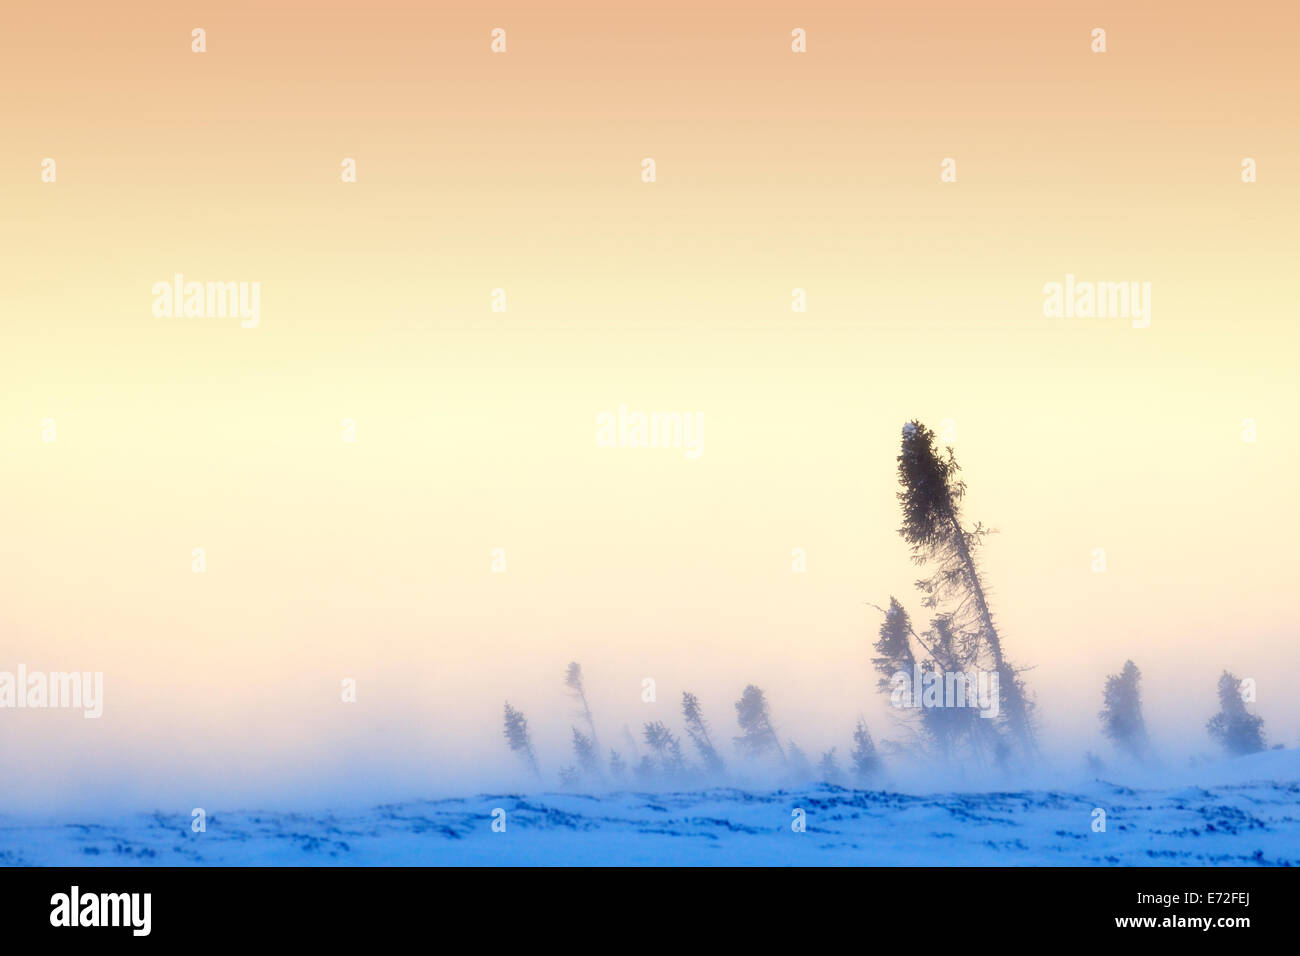 Arctic tundra with taiga forest at sunset with blizzard blowing snow, Wapusk National park, Canada. - Stock Image